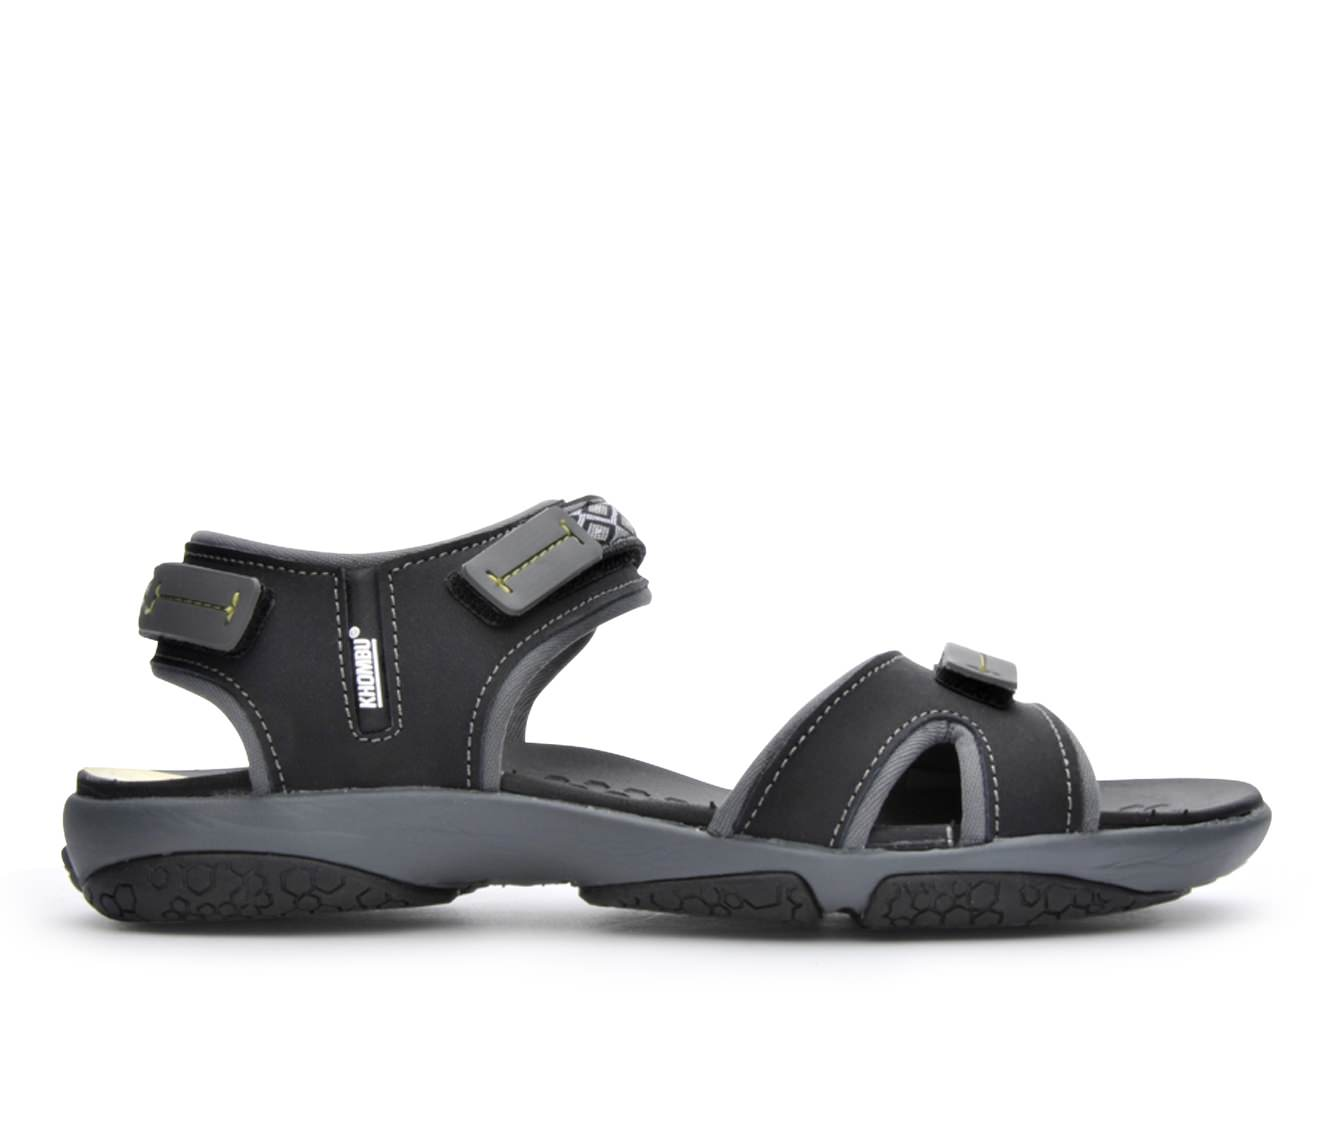 Women's Khombu Kennebec Sandals (Black)